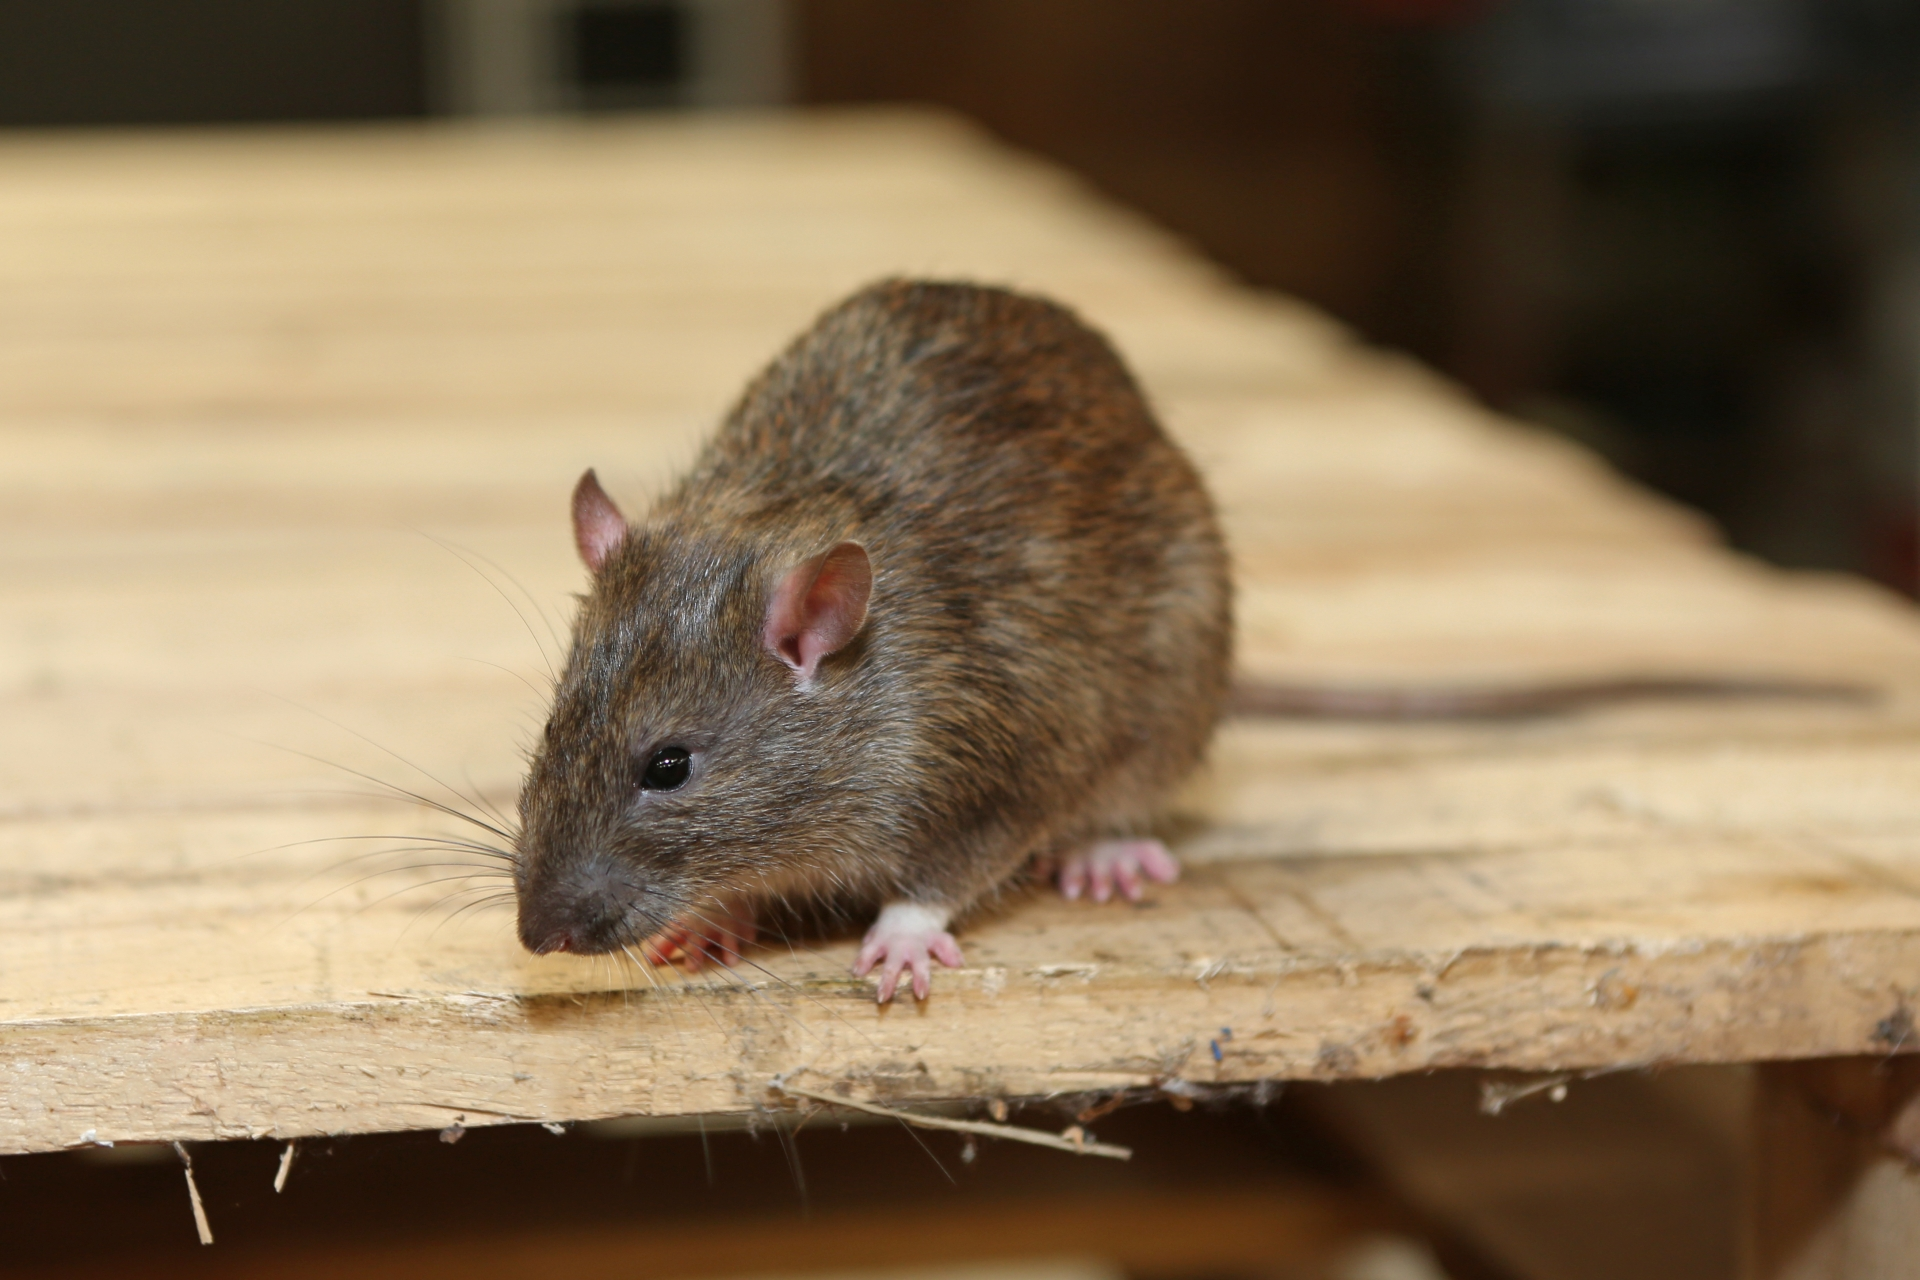 Rat extermination, Pest Control in Tooting, SW17. Call Now 020 8166 9746